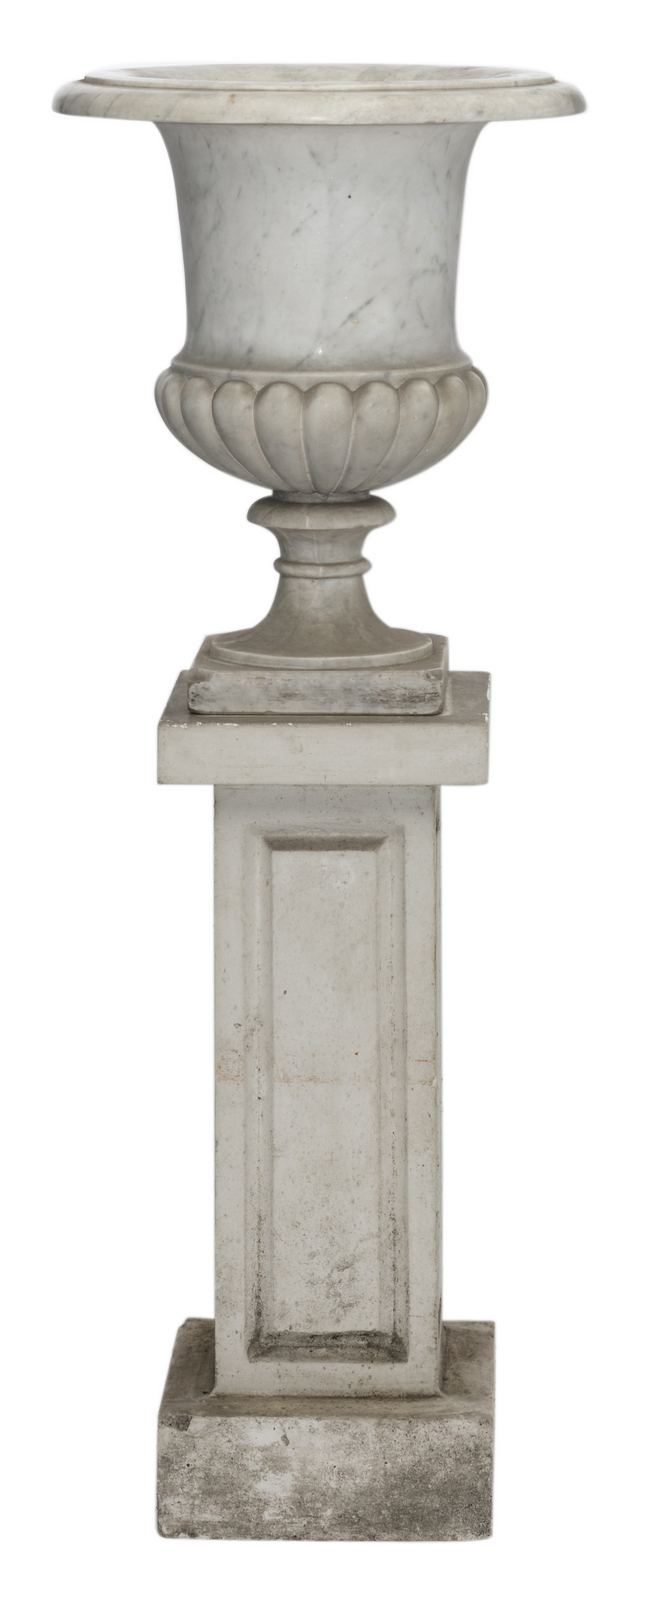 A white marble Medici garden vase on an accompanying reconstituted stone pedestal, H 62 (without pedestal) - 137 cm (with pedestal)